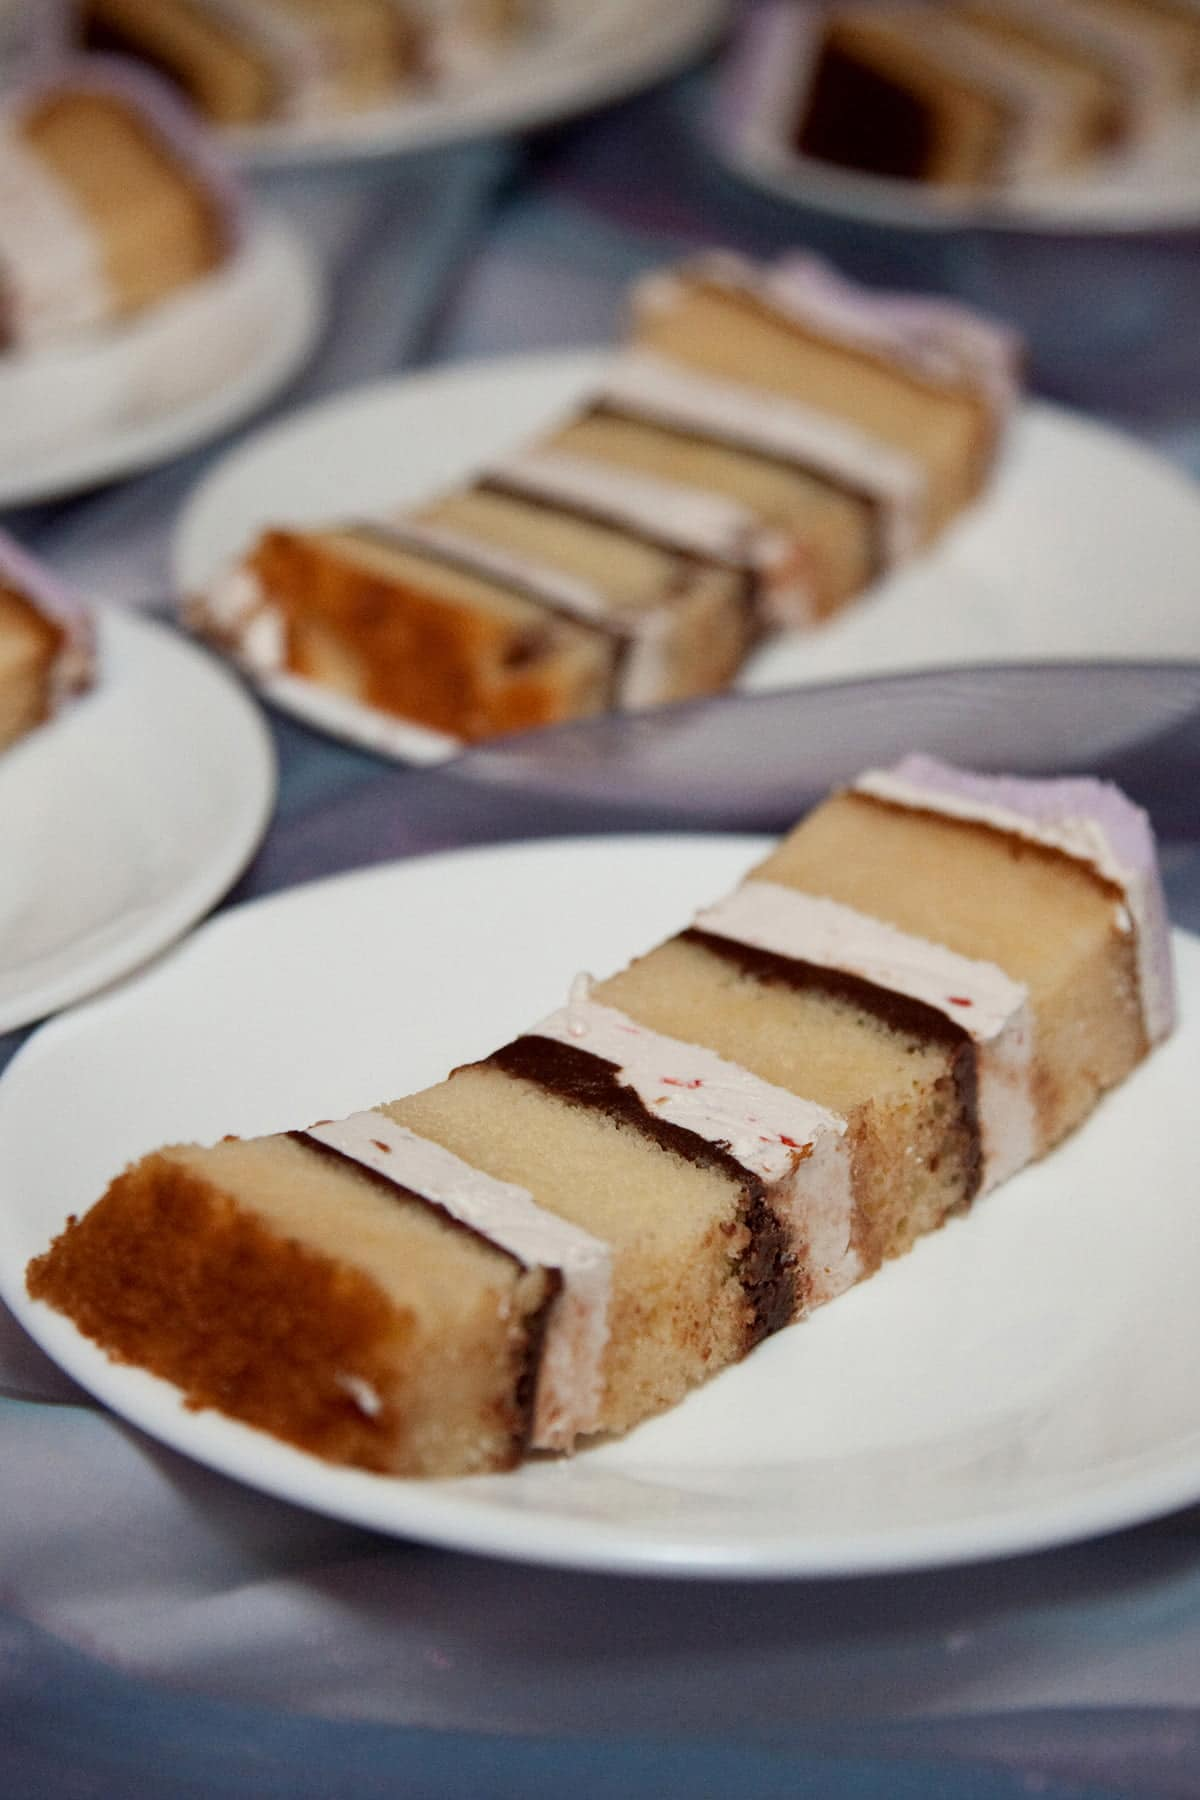 Slices of layered raspberry tiramisu torte are on small plates, laid out on a table.